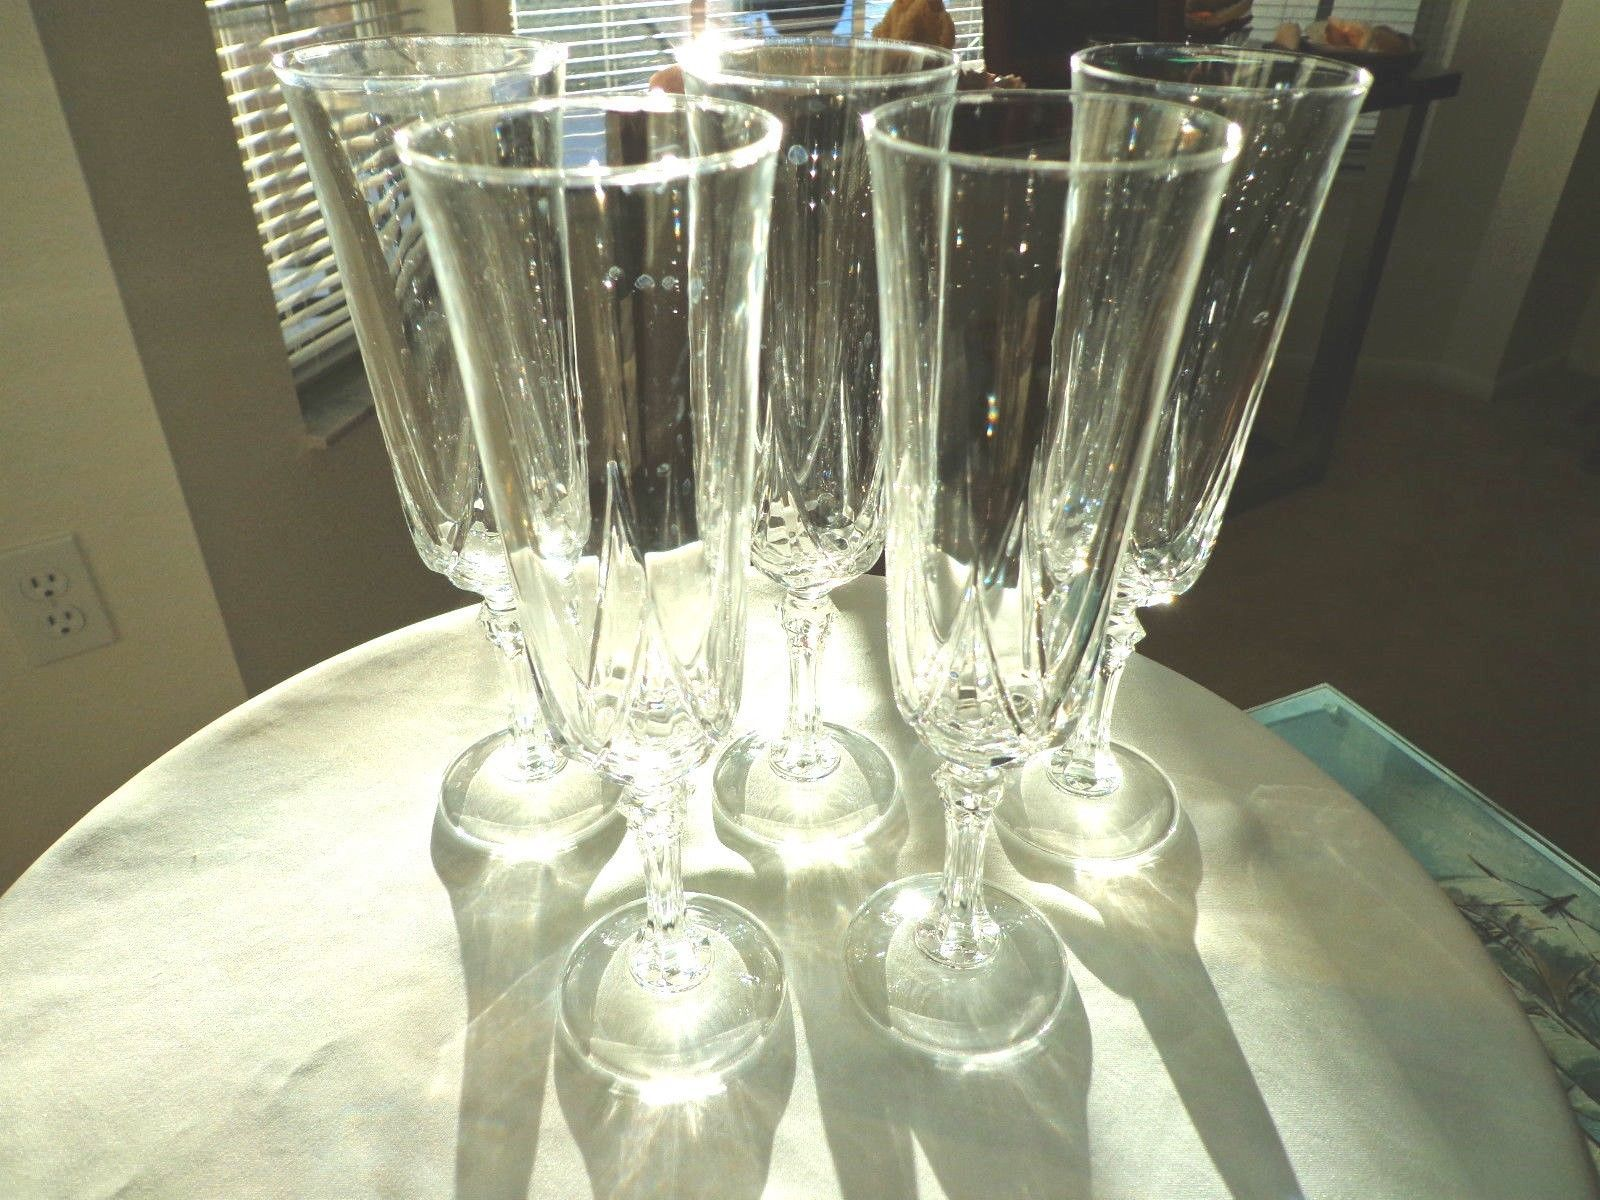 Primary image for Set of 5 Cris D'Arques Autruil Pattern Crystal Champagne Flutes